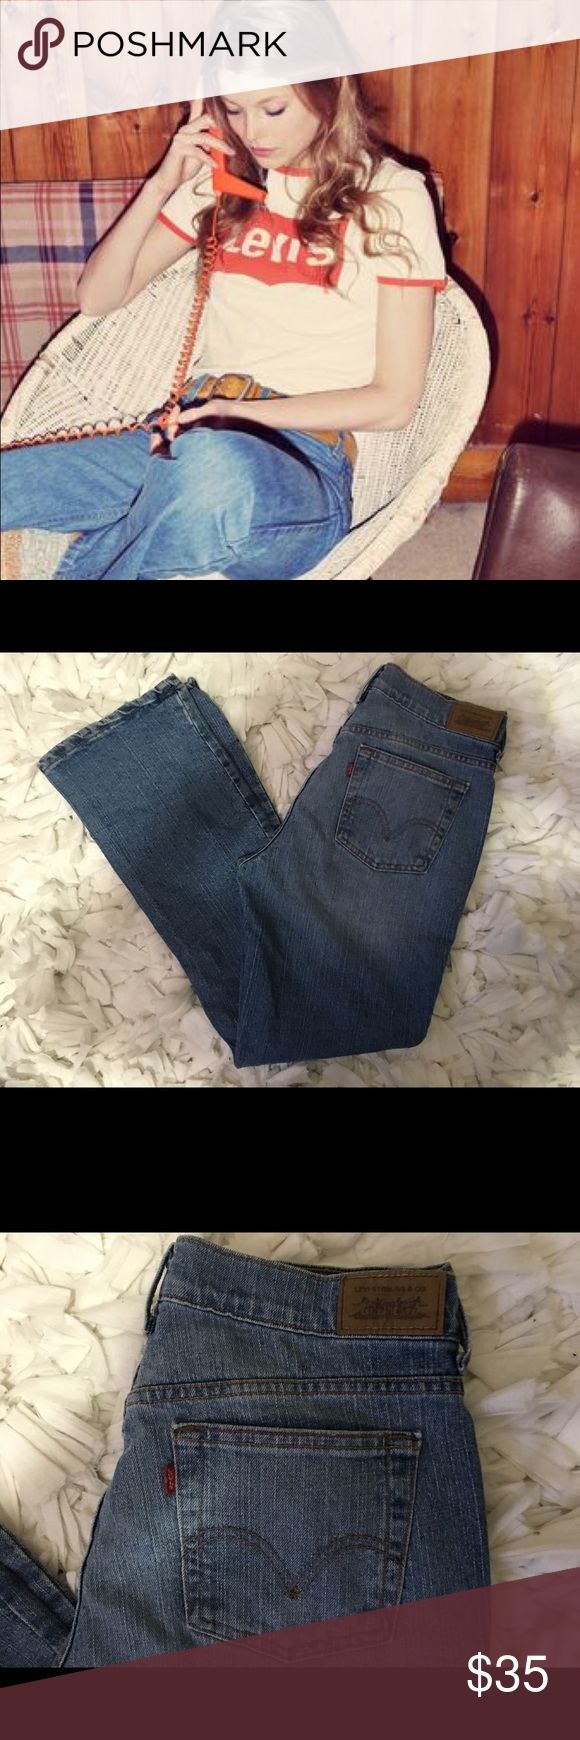 "Levis Levis jeans.  Style is 511.  Awesome orange & red stitching.  Tag reads 8M.  Measurements are 31 waist 31 inseam & 10""rise.  Gently worn.  Super comfy!!!  First pic for inspiration only!!! Levi's Jeans Boot Cut"